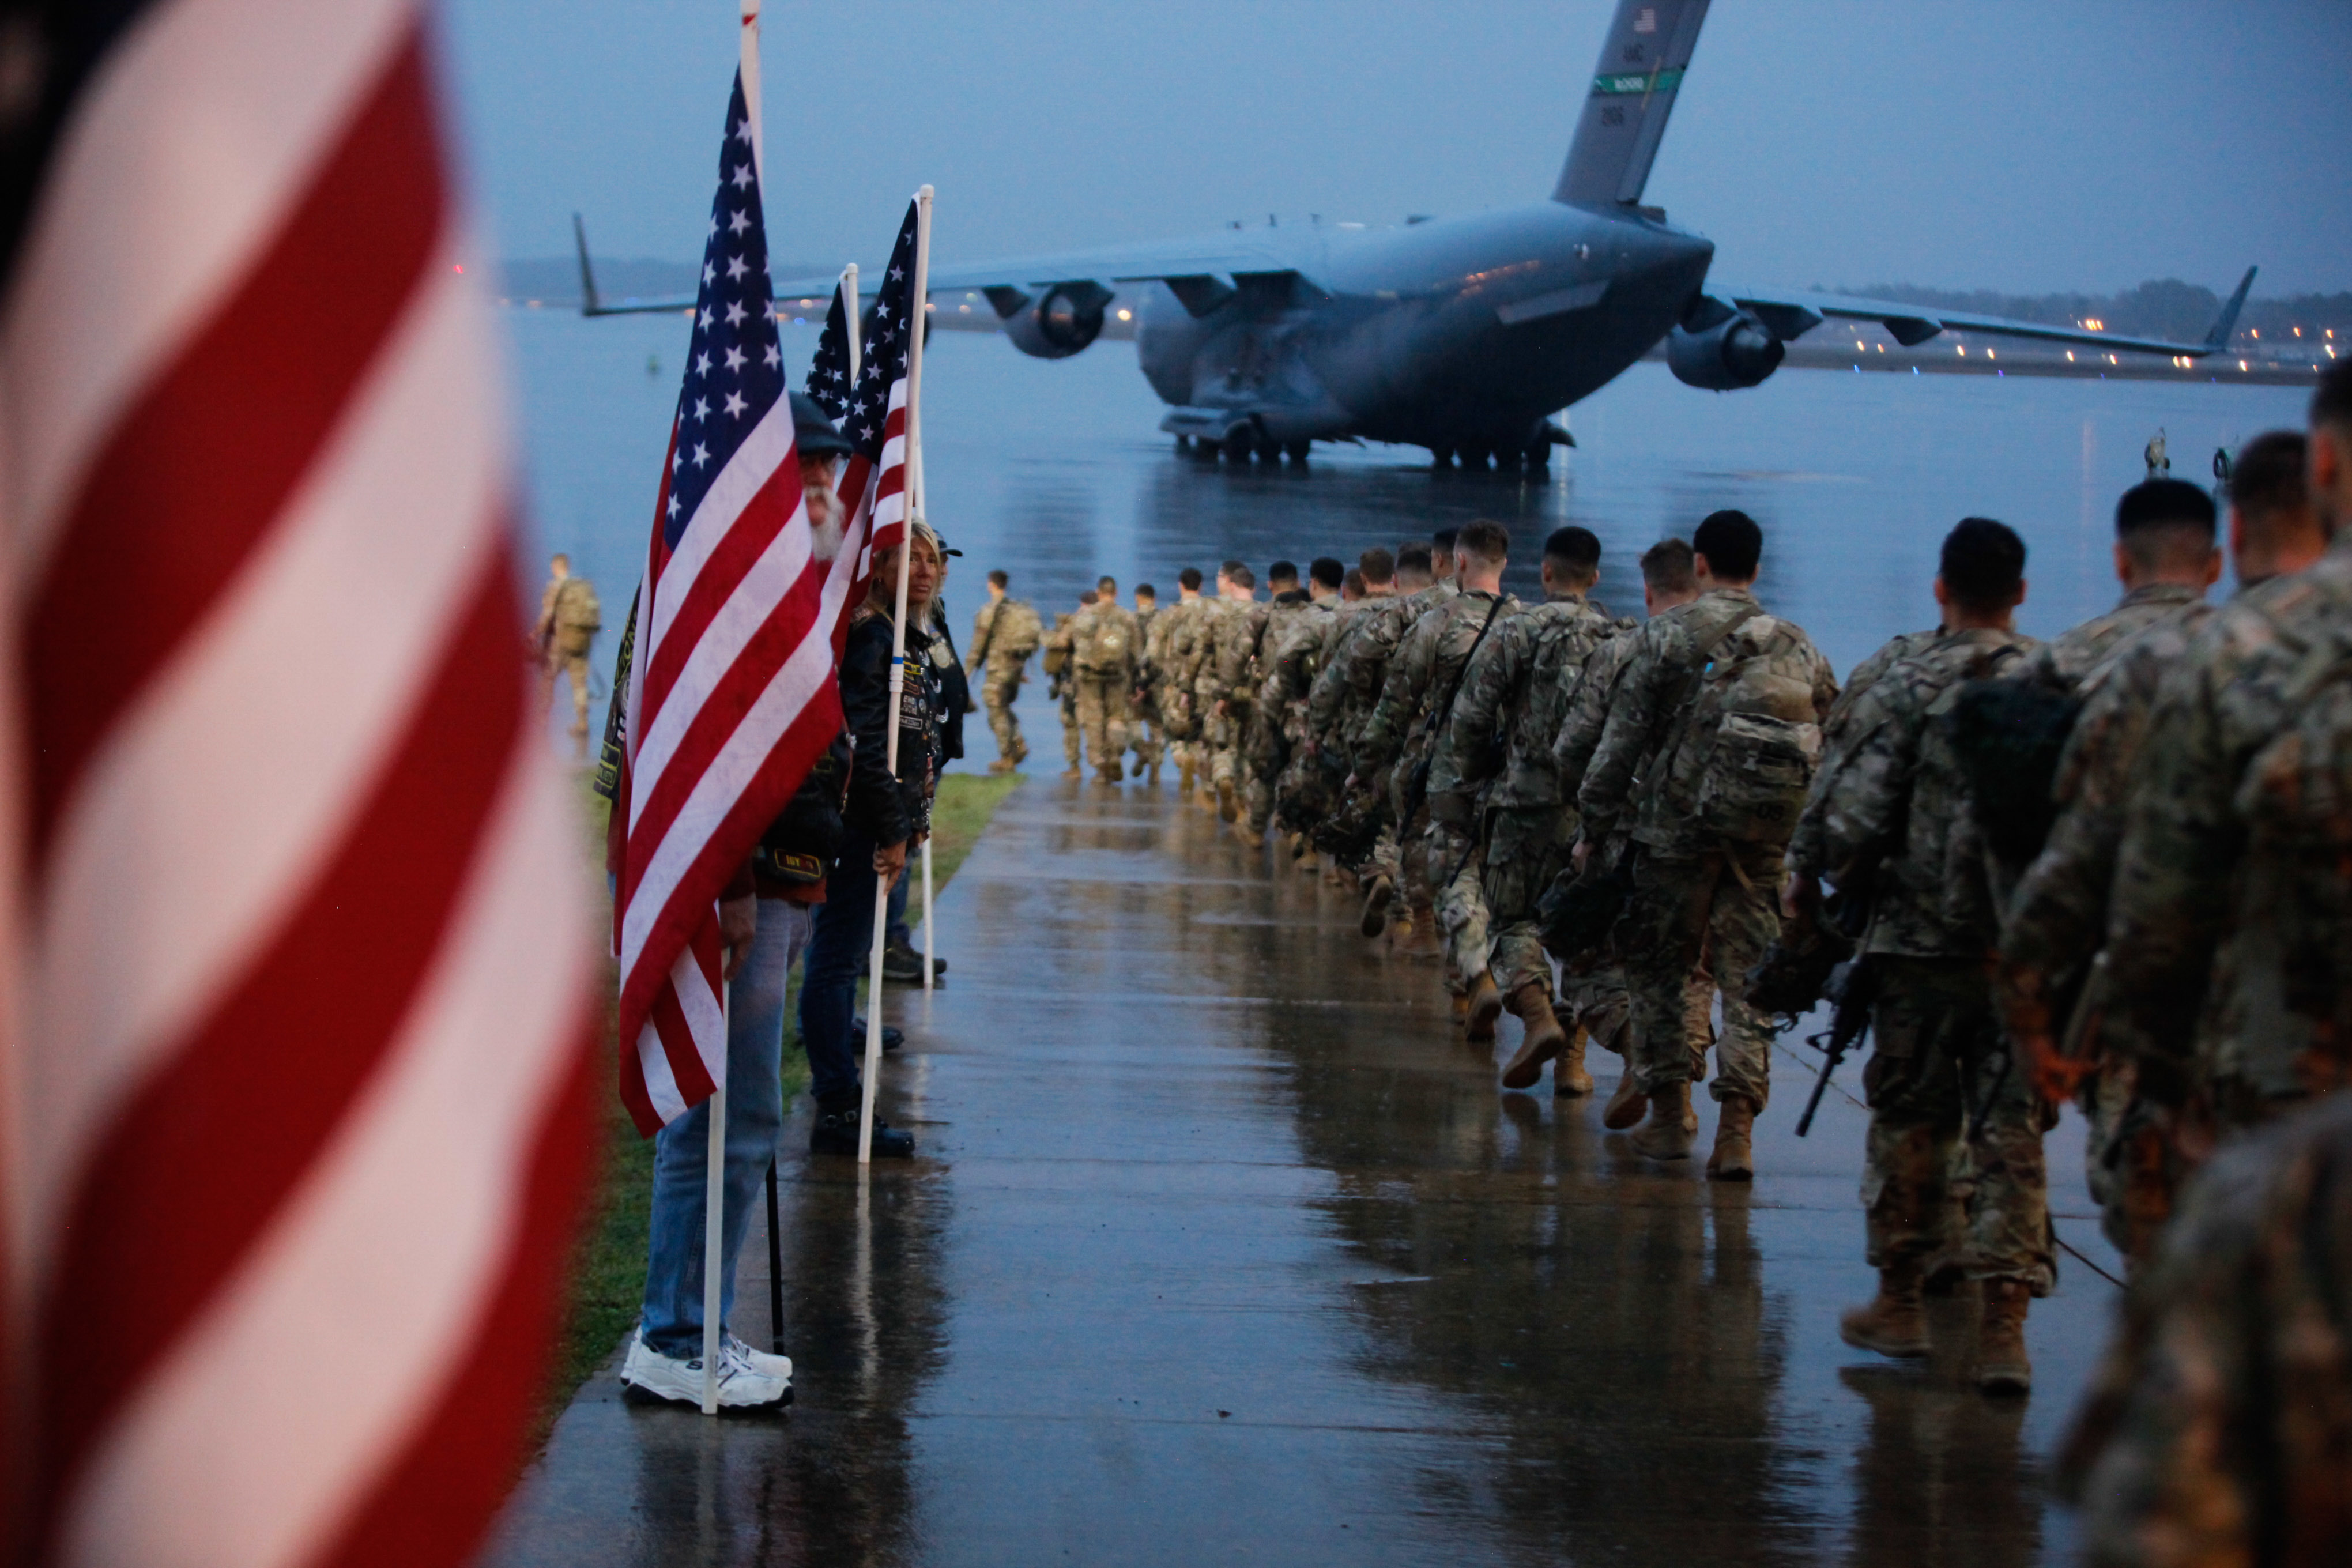 US Paratroopers and Equipment Bound for the U.S. Central Command Area of Operations